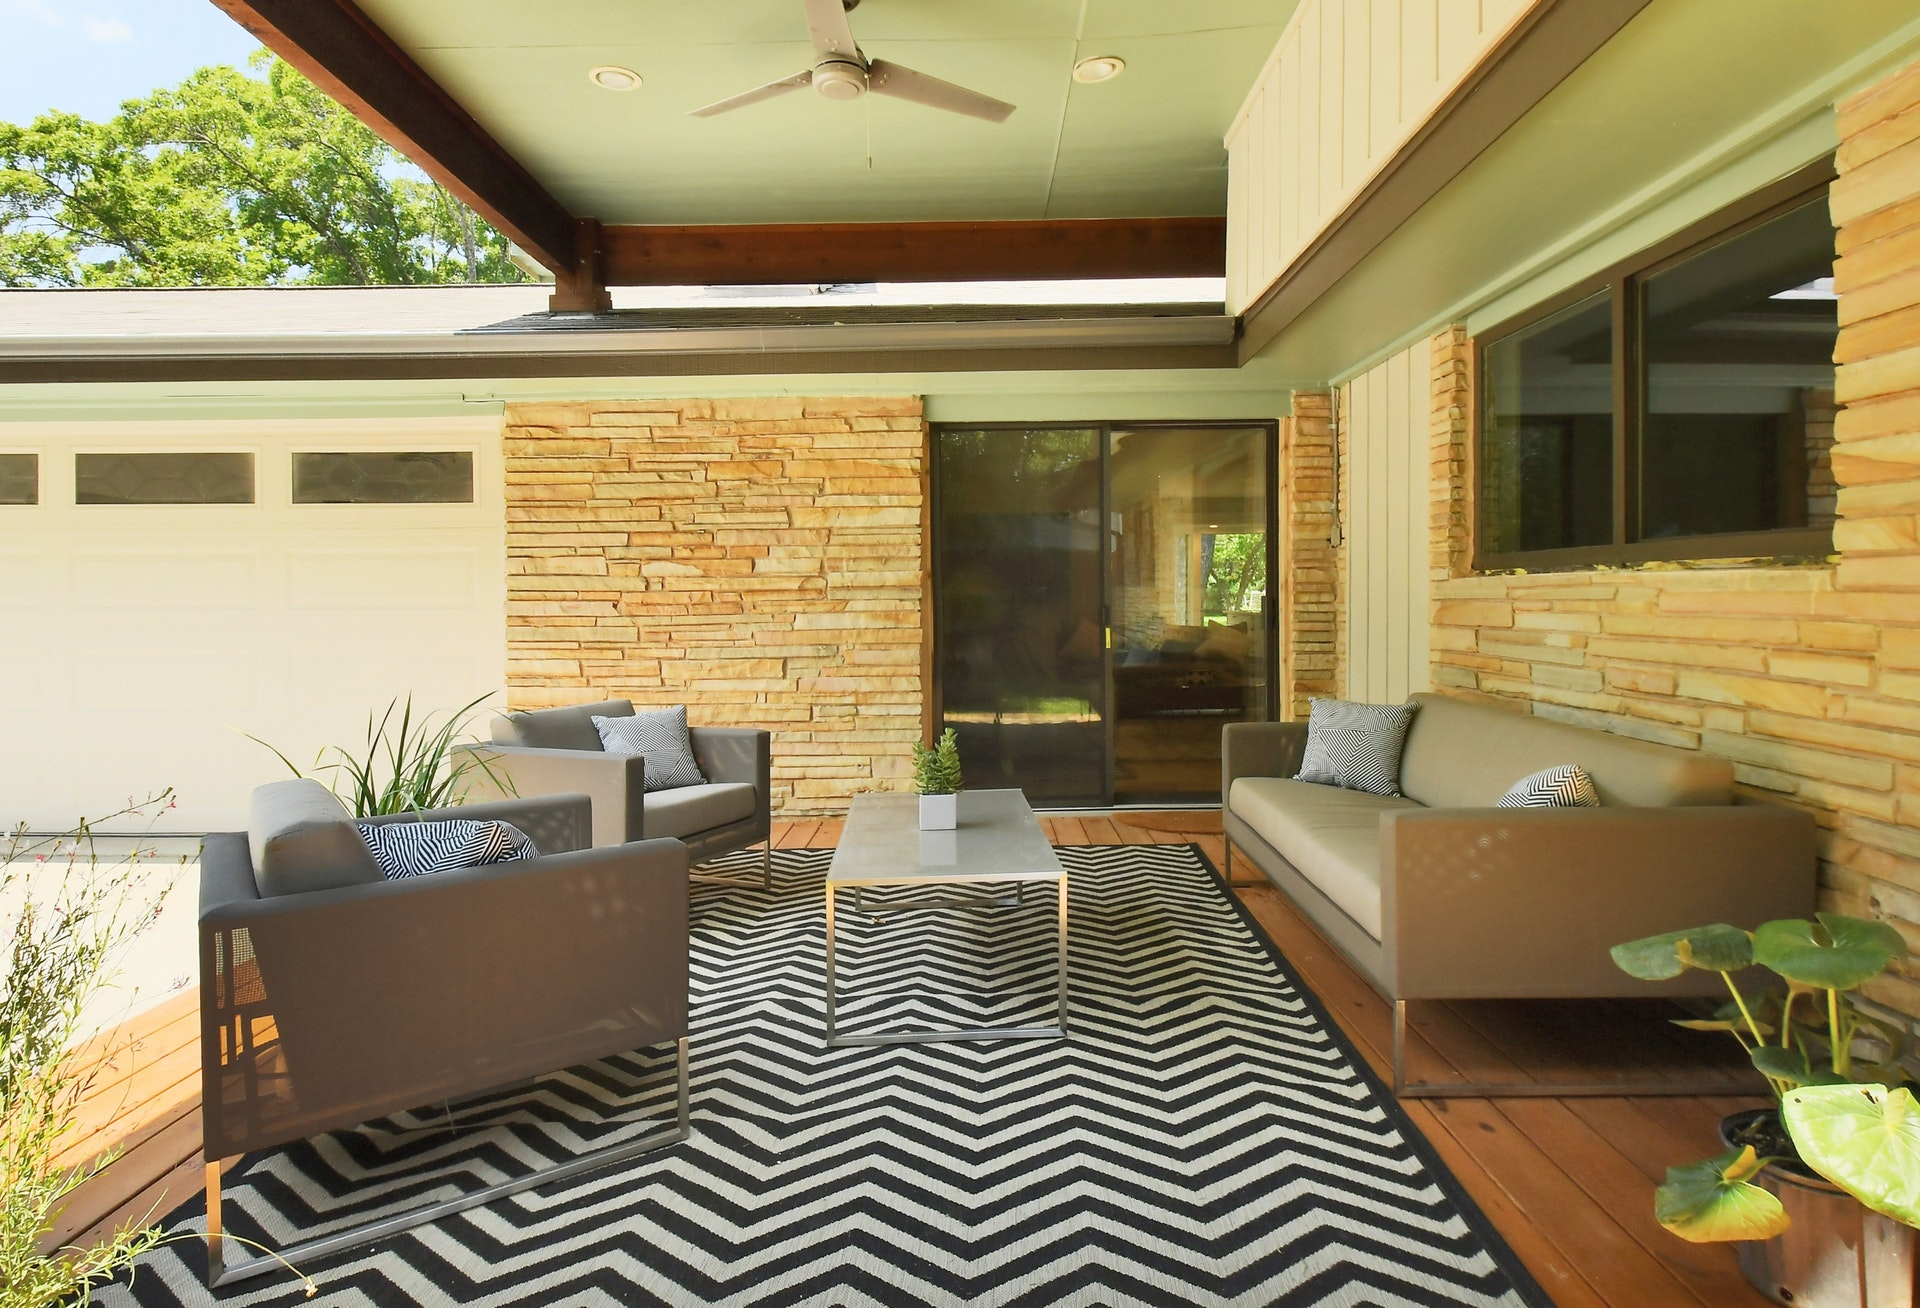 Gorgeous Stacked Sandstone Siding, Bright And Spacious Floor Plan, Vaulted